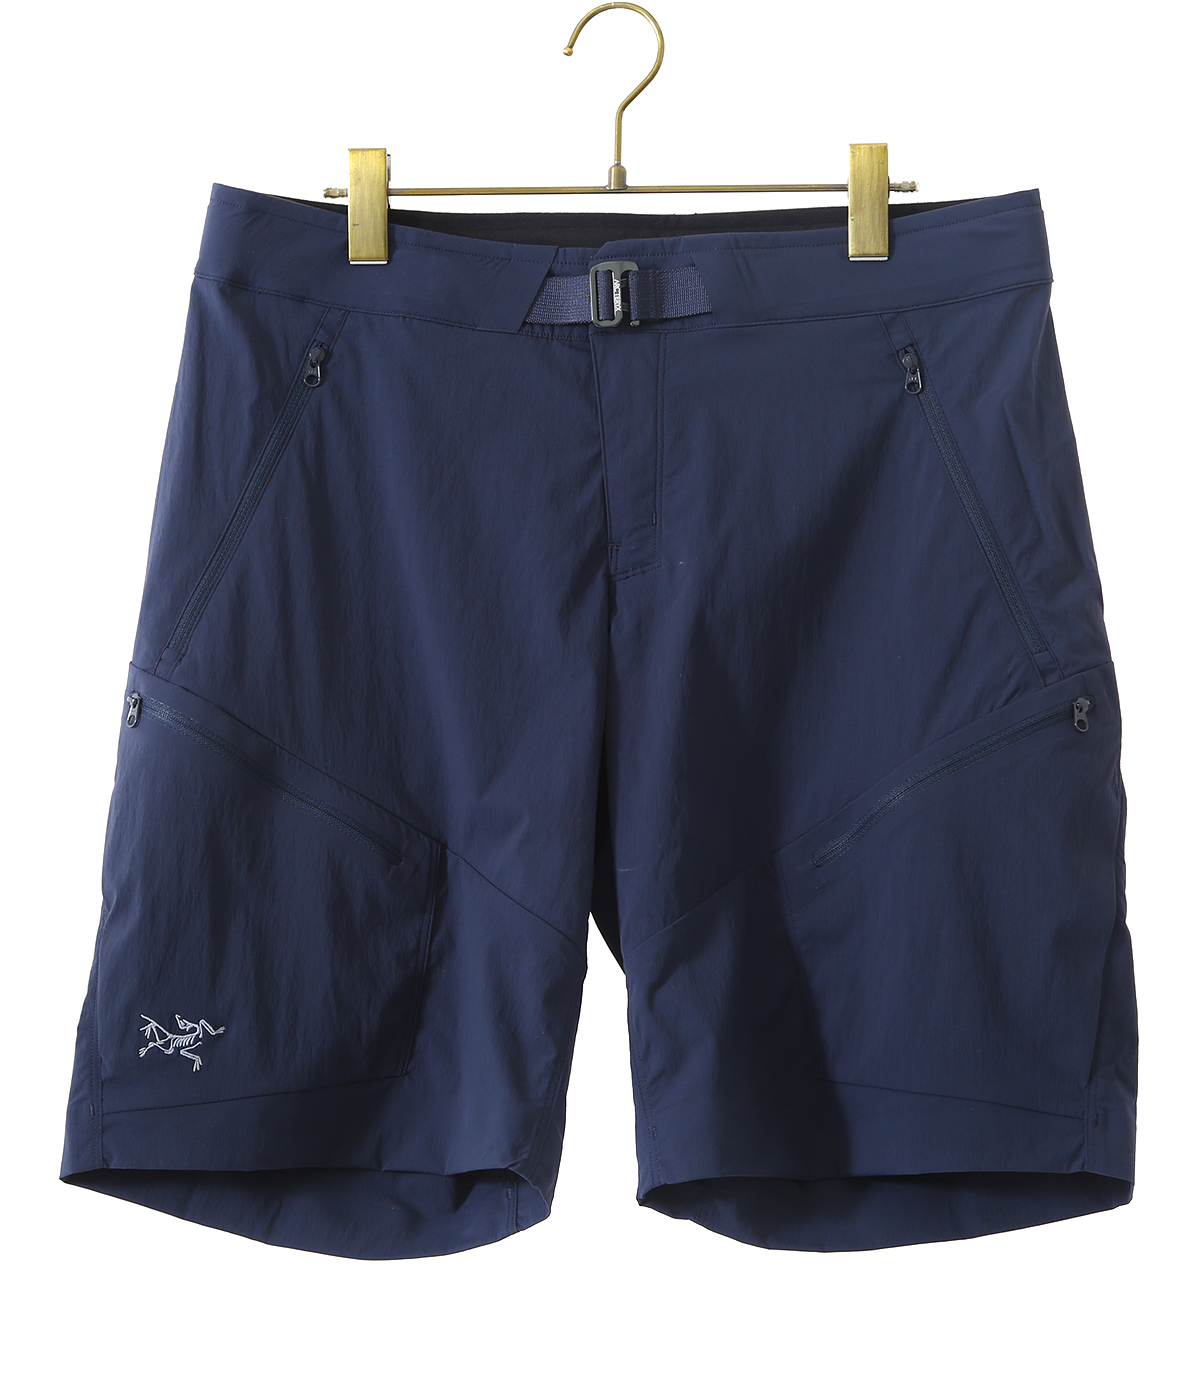 Palisade Short Men's -Cobalt Moon-